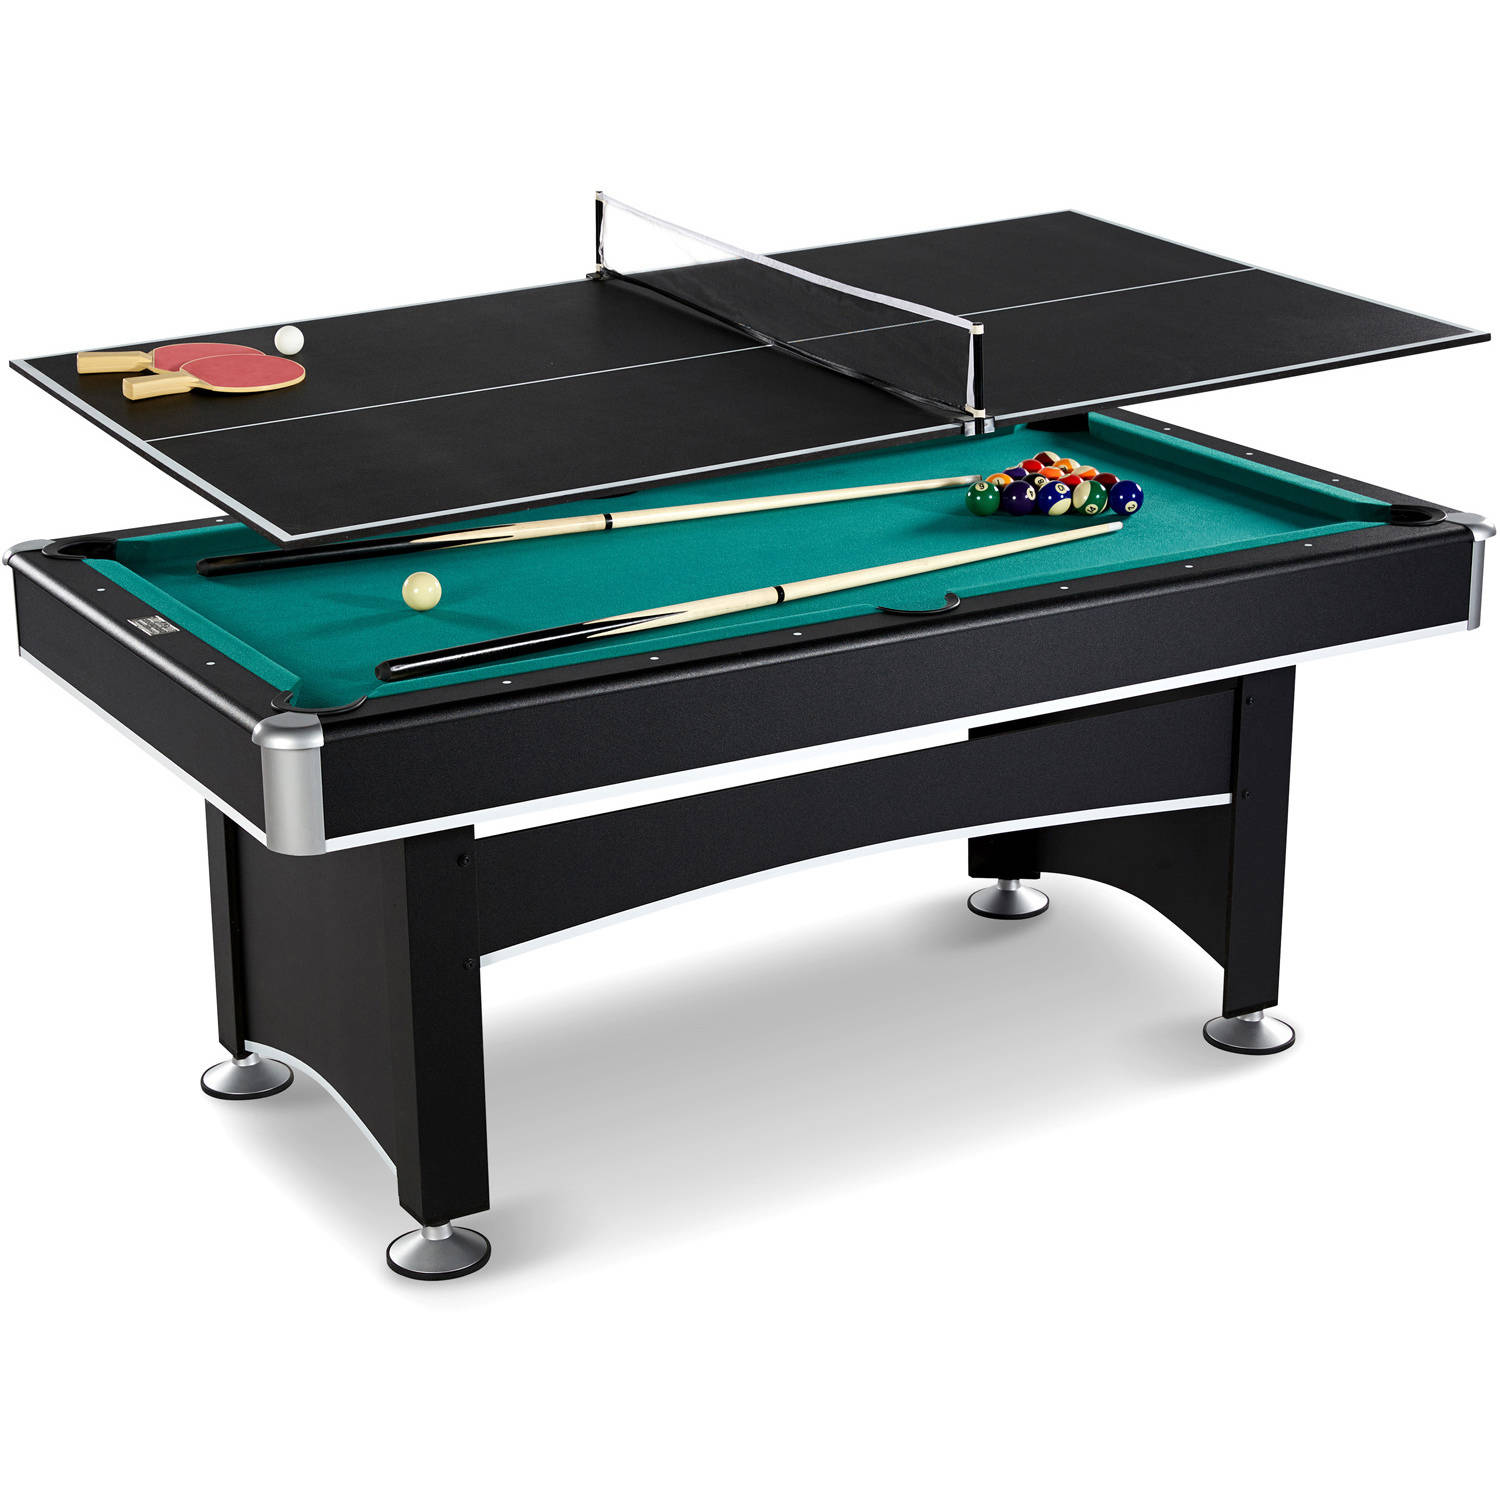 Charmant Barrington 6 Ft. Arcade Billiard Table With Table Tennis Top And Accessory  Kit